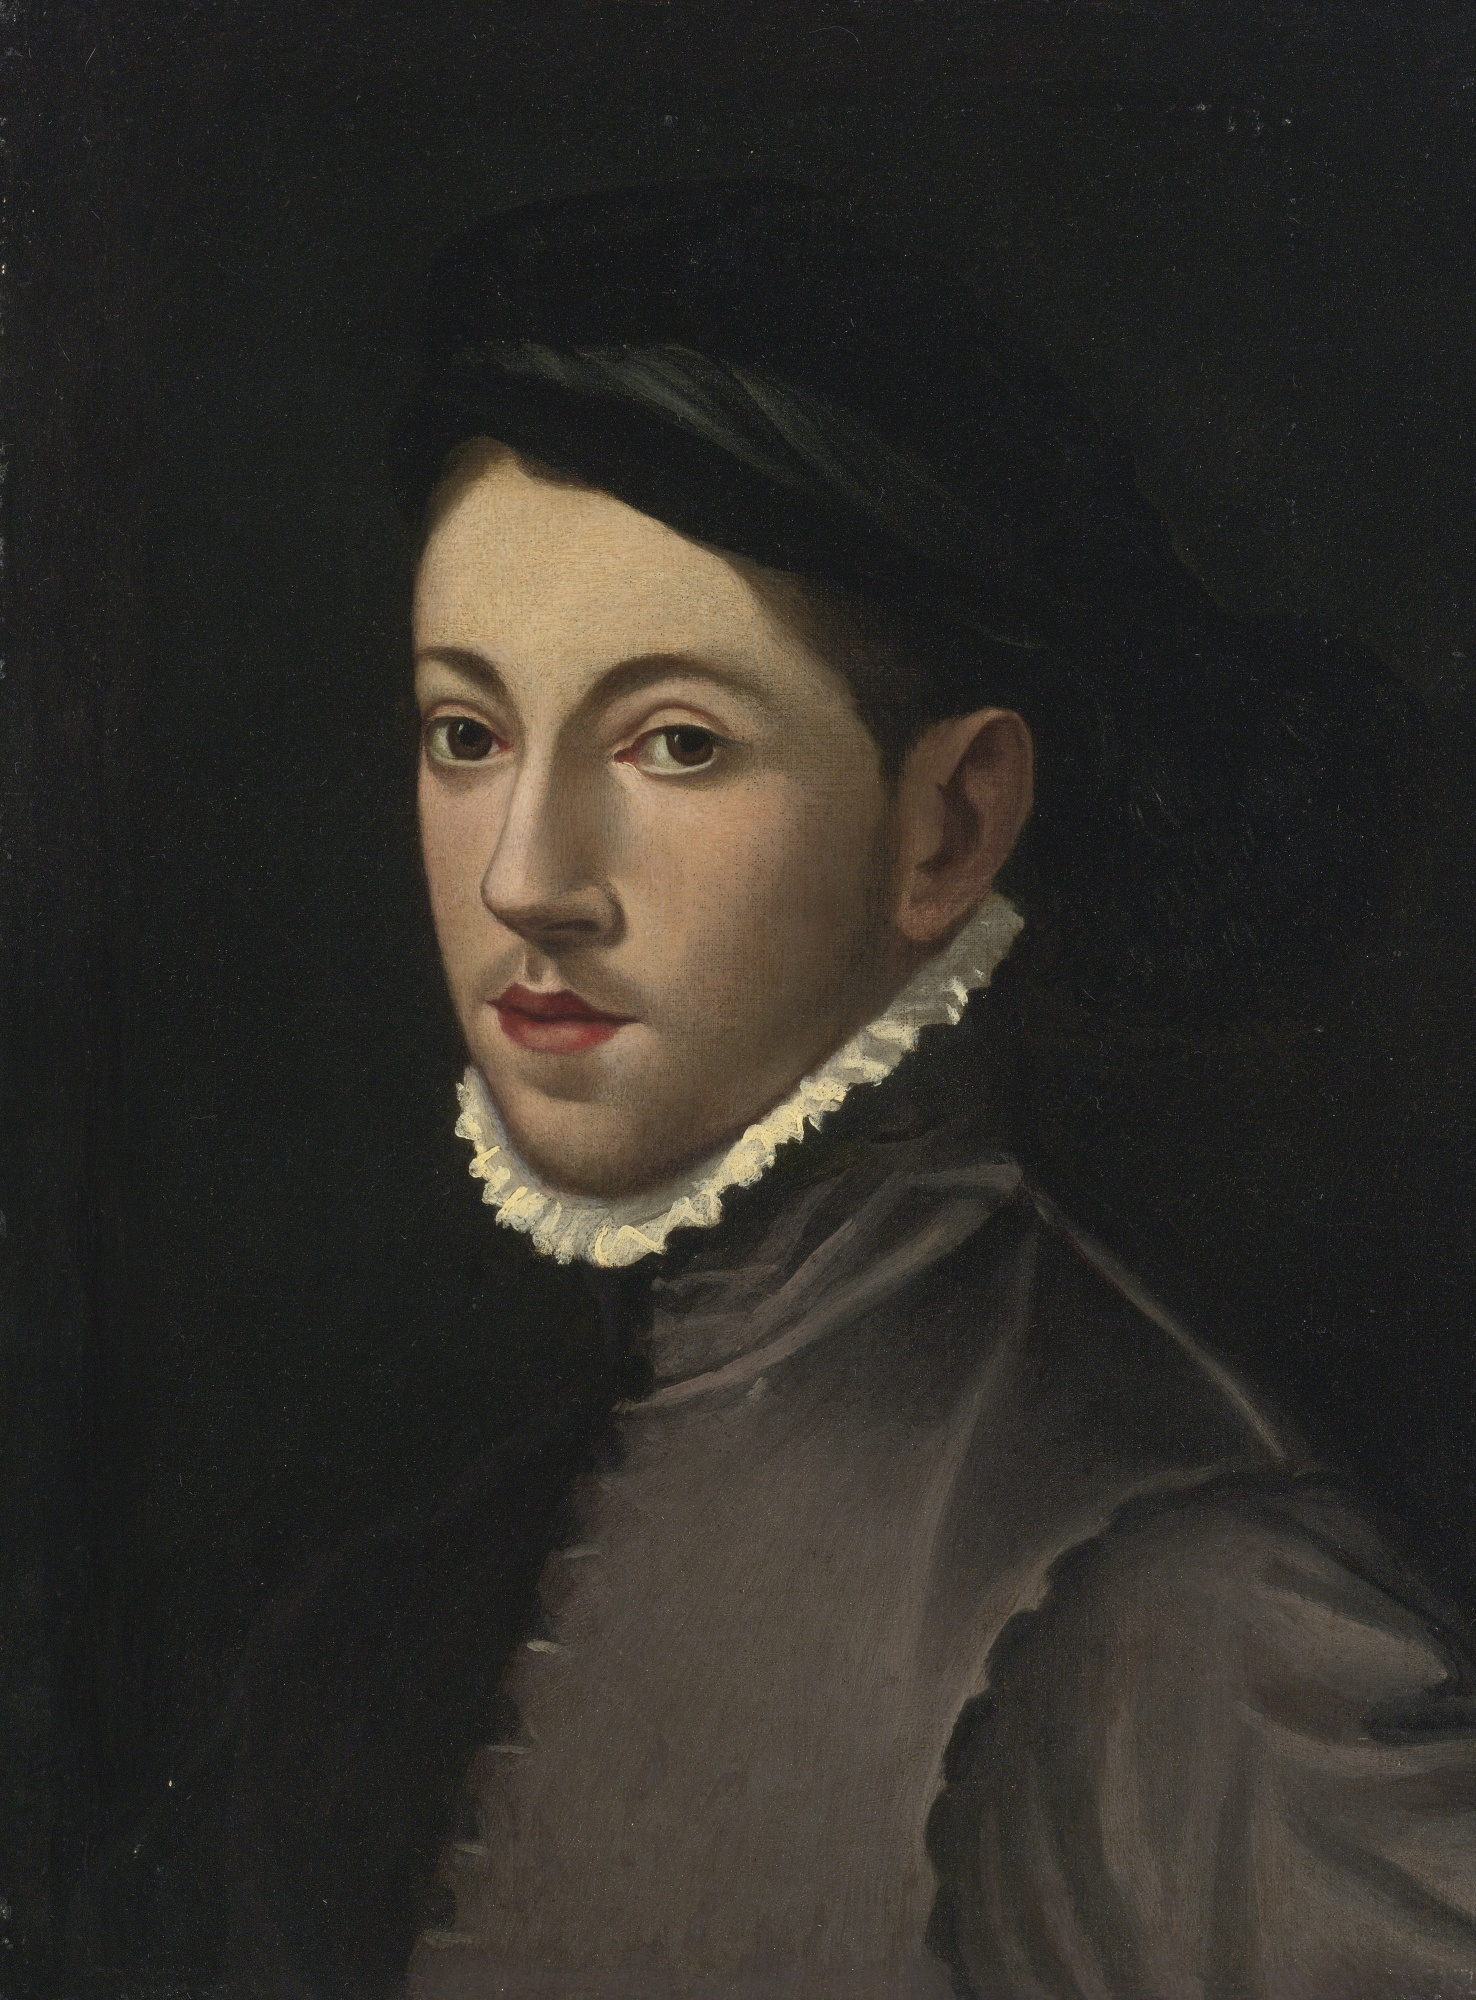 Images Of Boys Painted Bedrooms: File:Portrait Of A Boy, Head And Shoulders.jpg